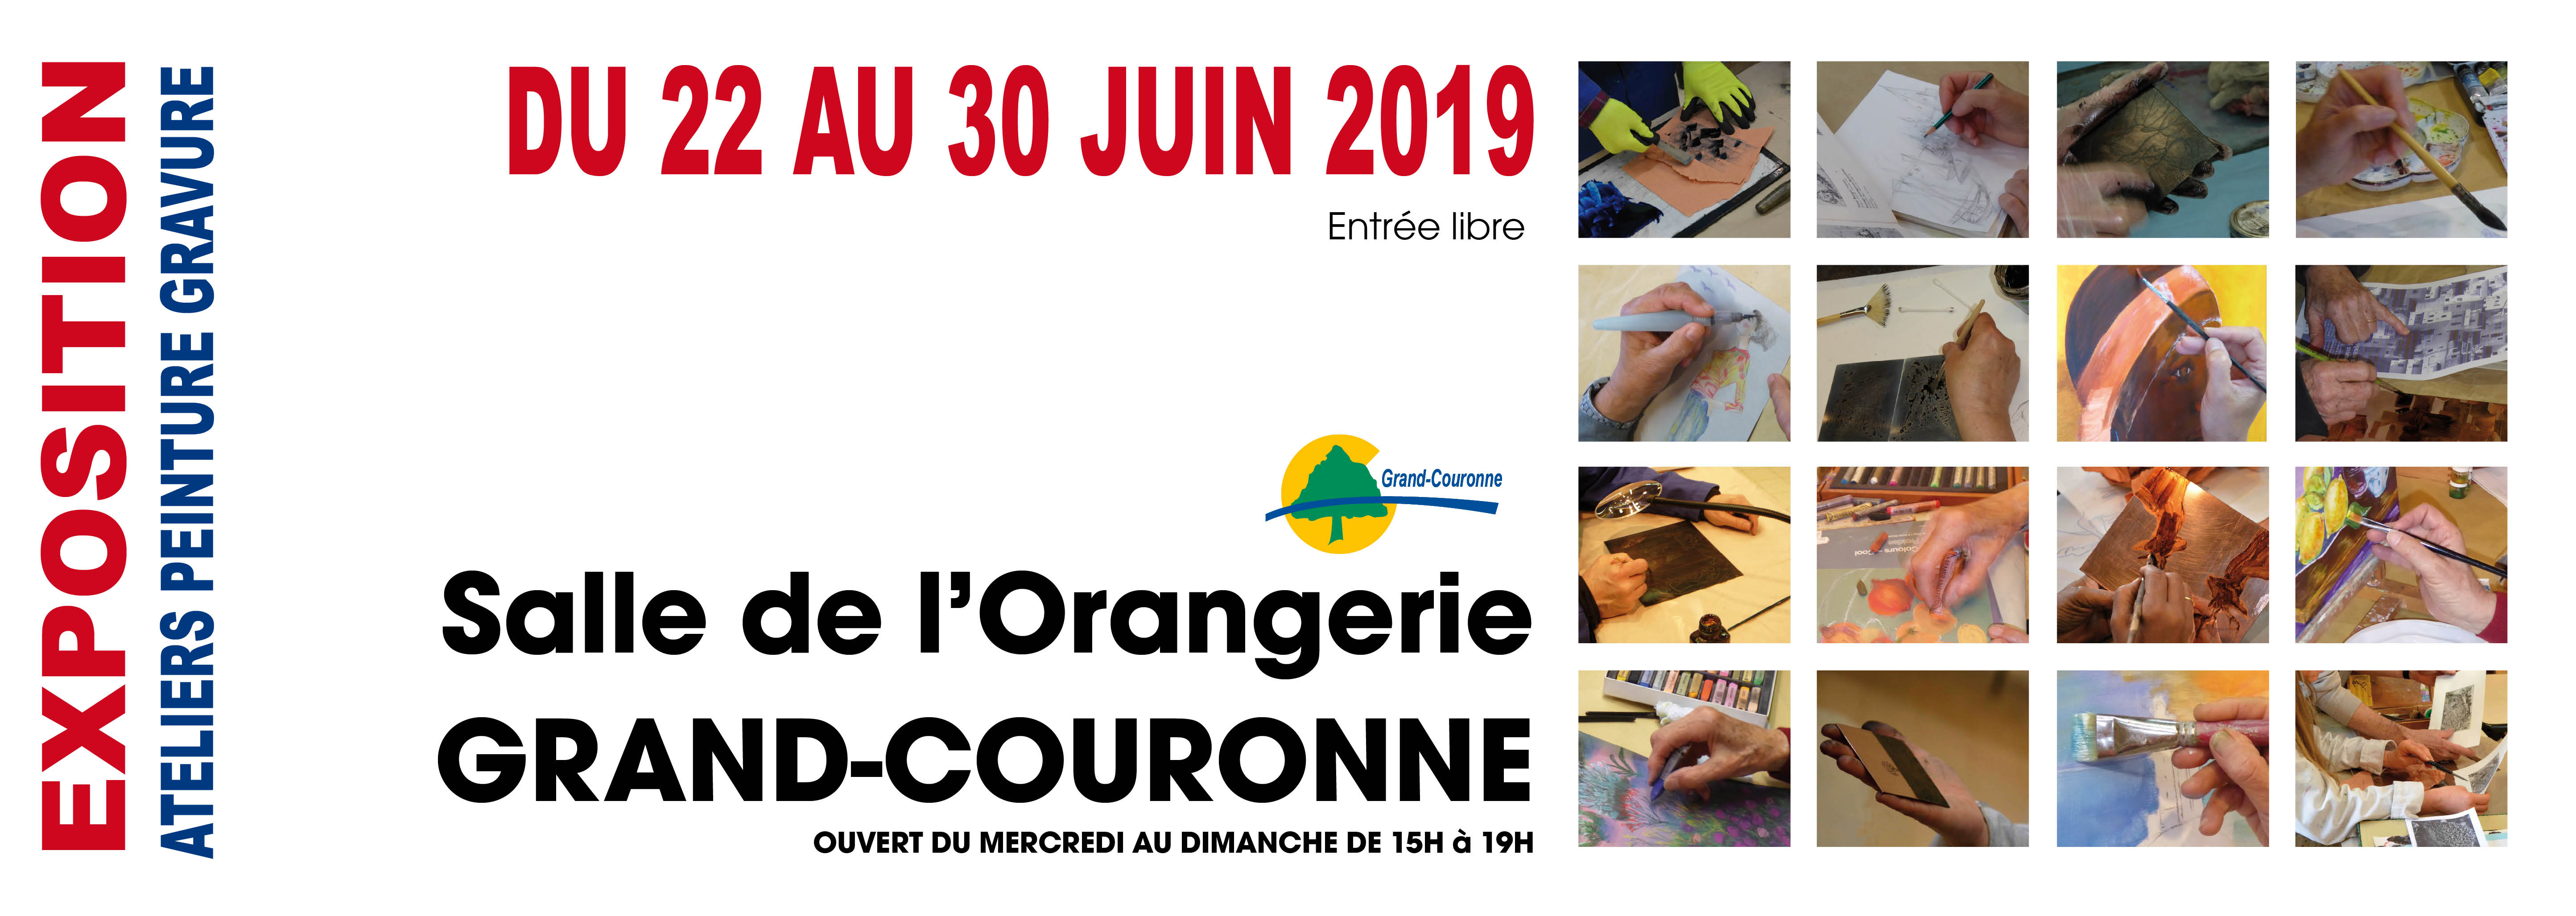 Expo adultes fin 30 juin